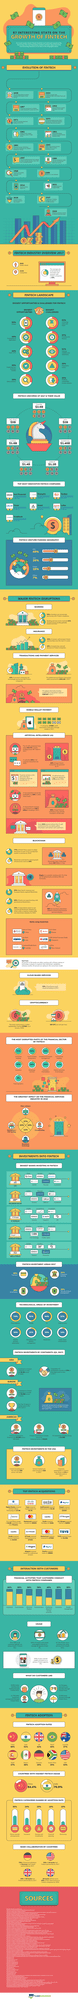 The Growth of Fintech Infographic - First Wire Transfer to Blockchain 2